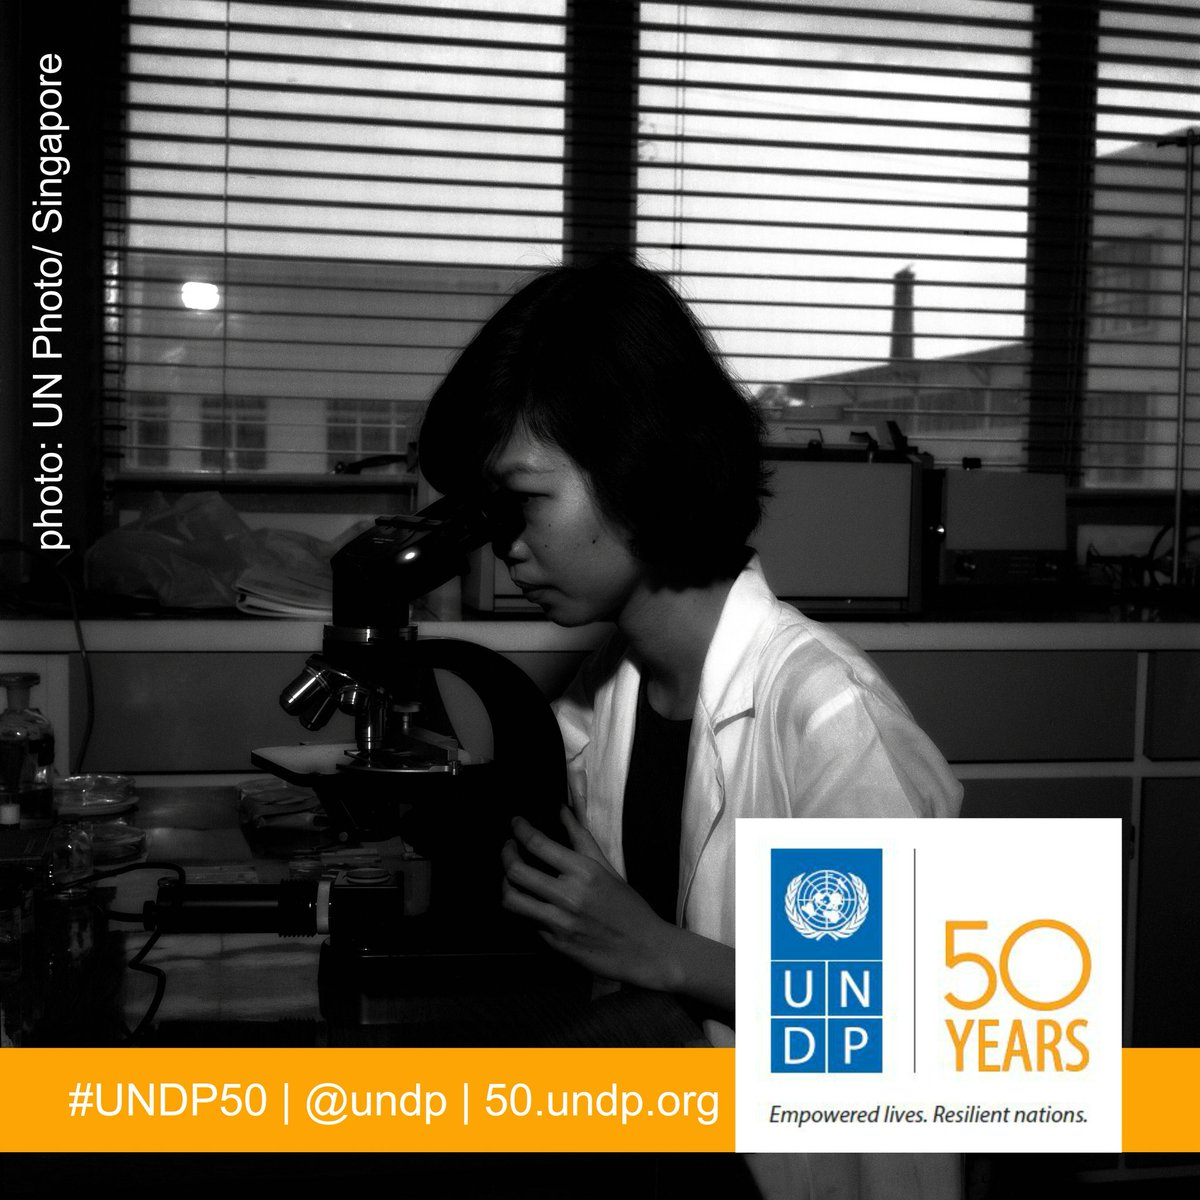 11 days til #UNDP50. 1 of our 1st #womeninscience from 1967 urban renewal project in Singapore. #WomeninScienceDay